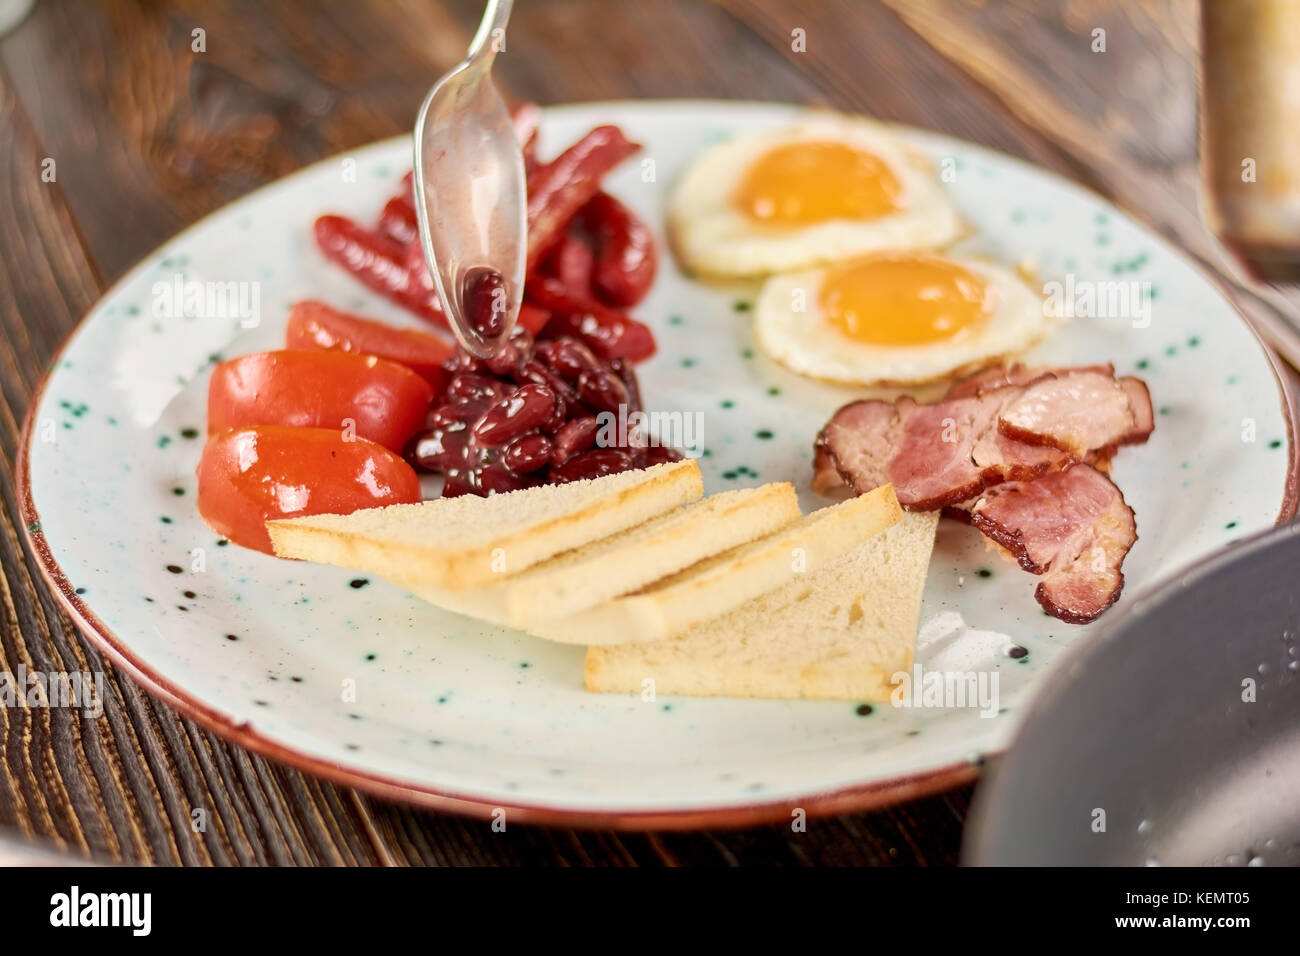 Full english breakfast on plate. Chef putting beans on plate with english breakfast. English breakfast in restaurant. - Stock Image